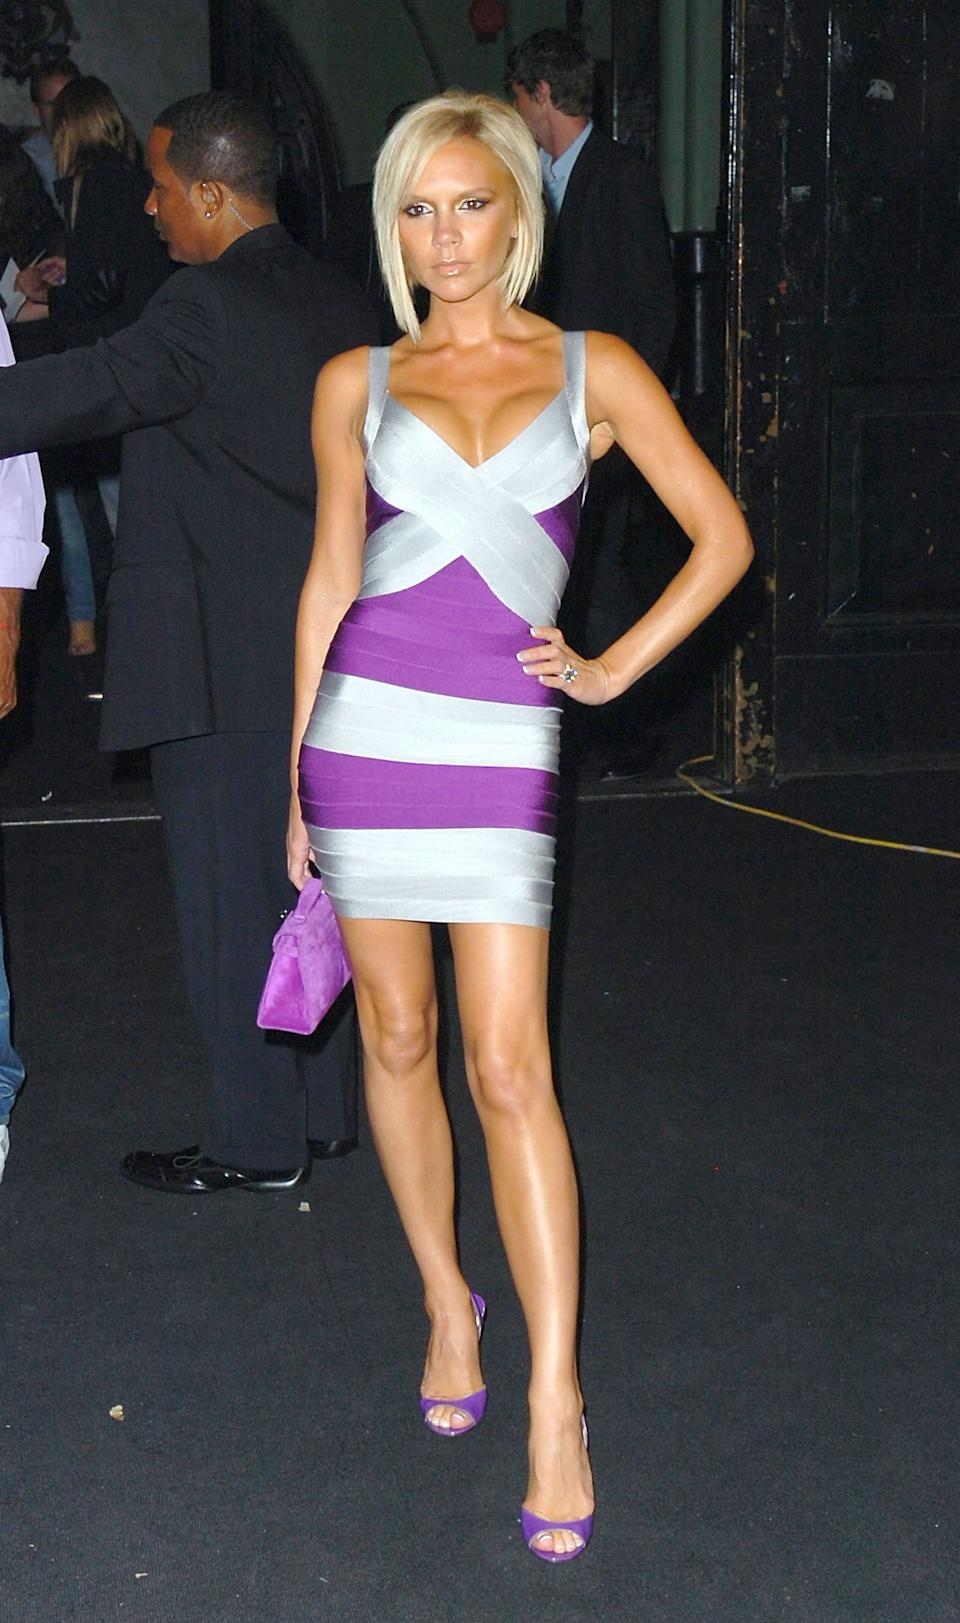 The Spice Girl (pictured in 2008) has previously favoured more form-fitted looks (Getty Images)